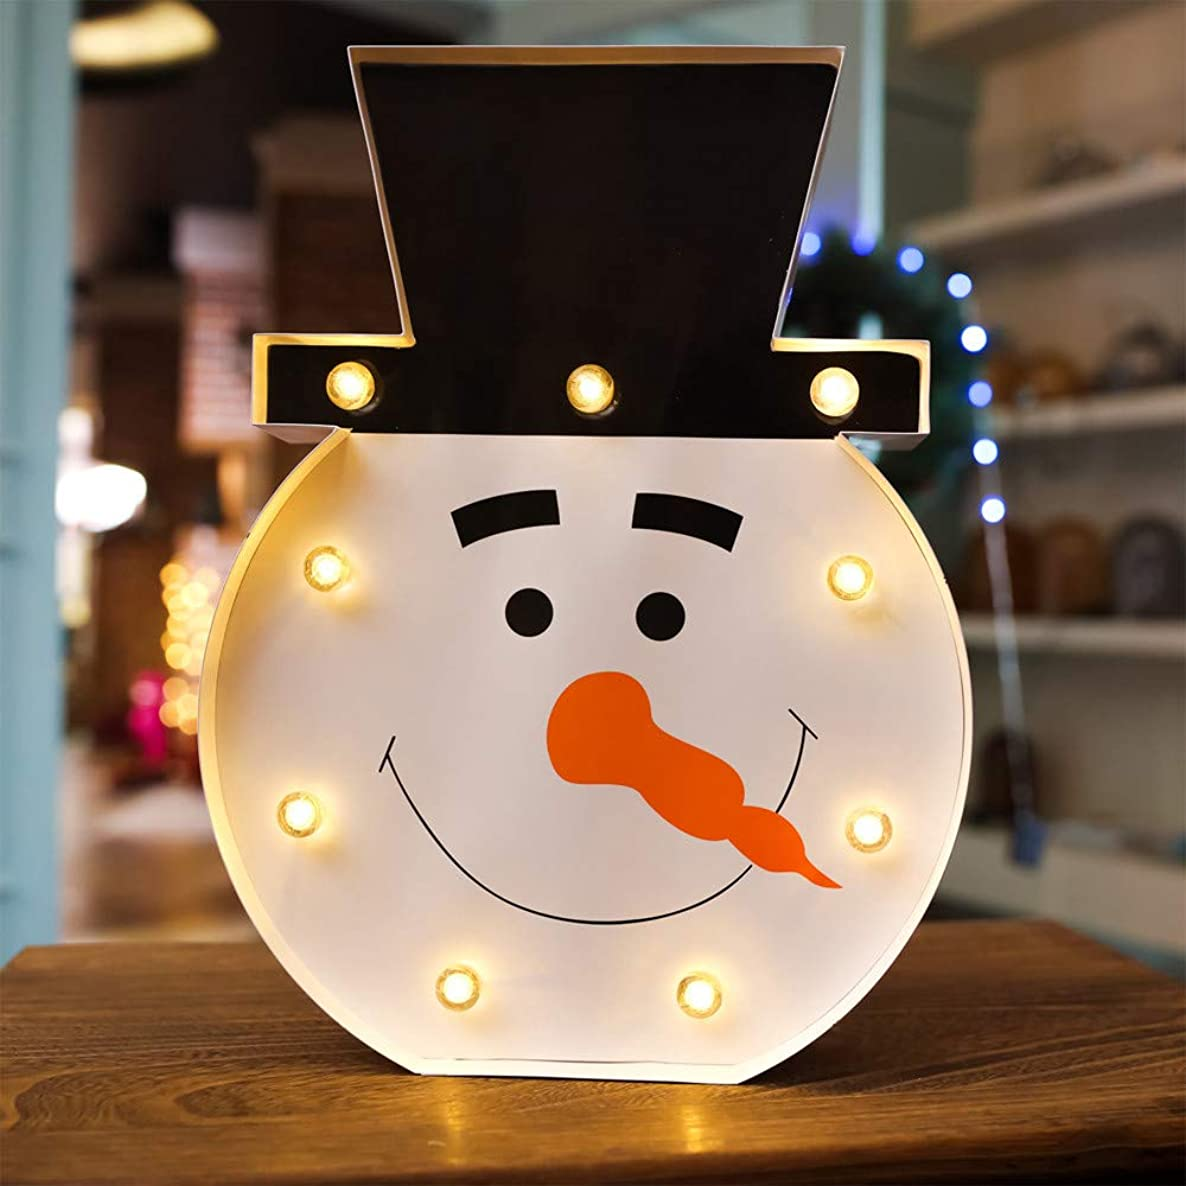 Glumes Christmas Snowman Light 9 LED Night Light Wall Decor Battery Operated Table Lamps for Party Children Kids Bedroom Birthday Christmas Decoration Gifts for Kids|US Warehouse Shipment (Snowman)